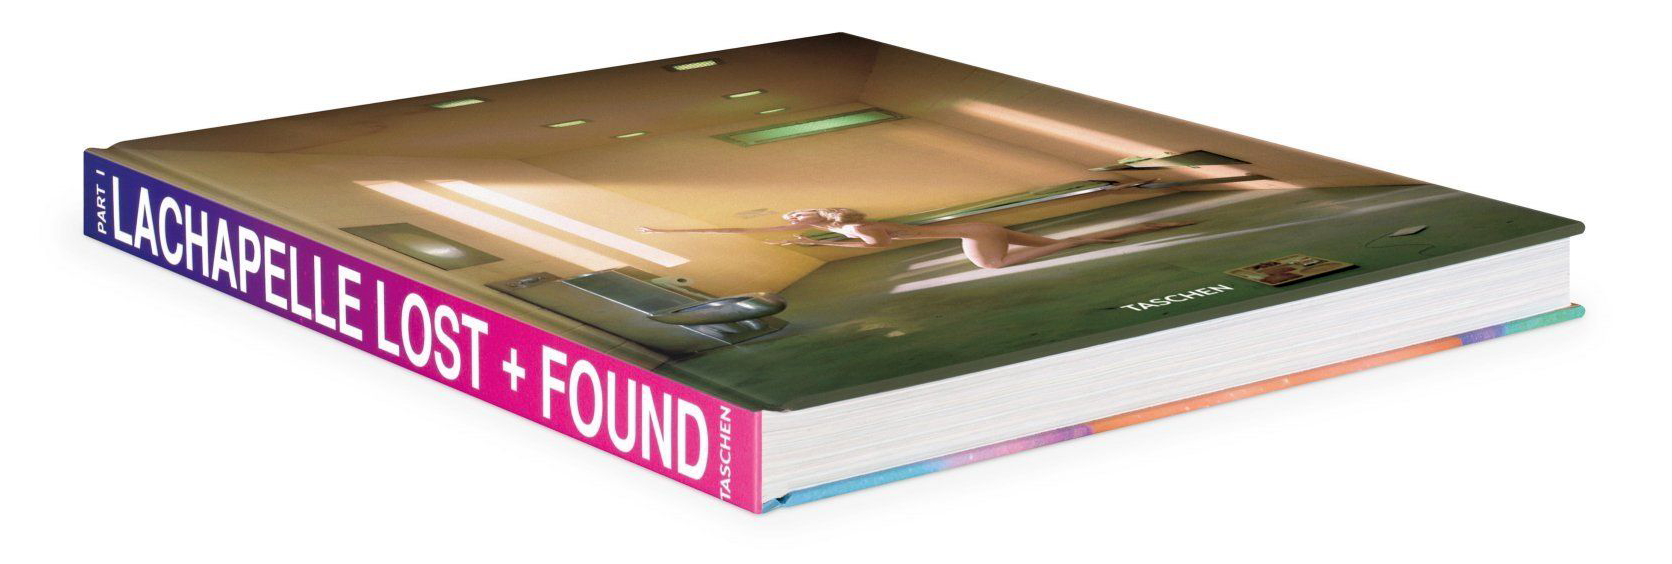 David Lachapelle Lost + Found Part I